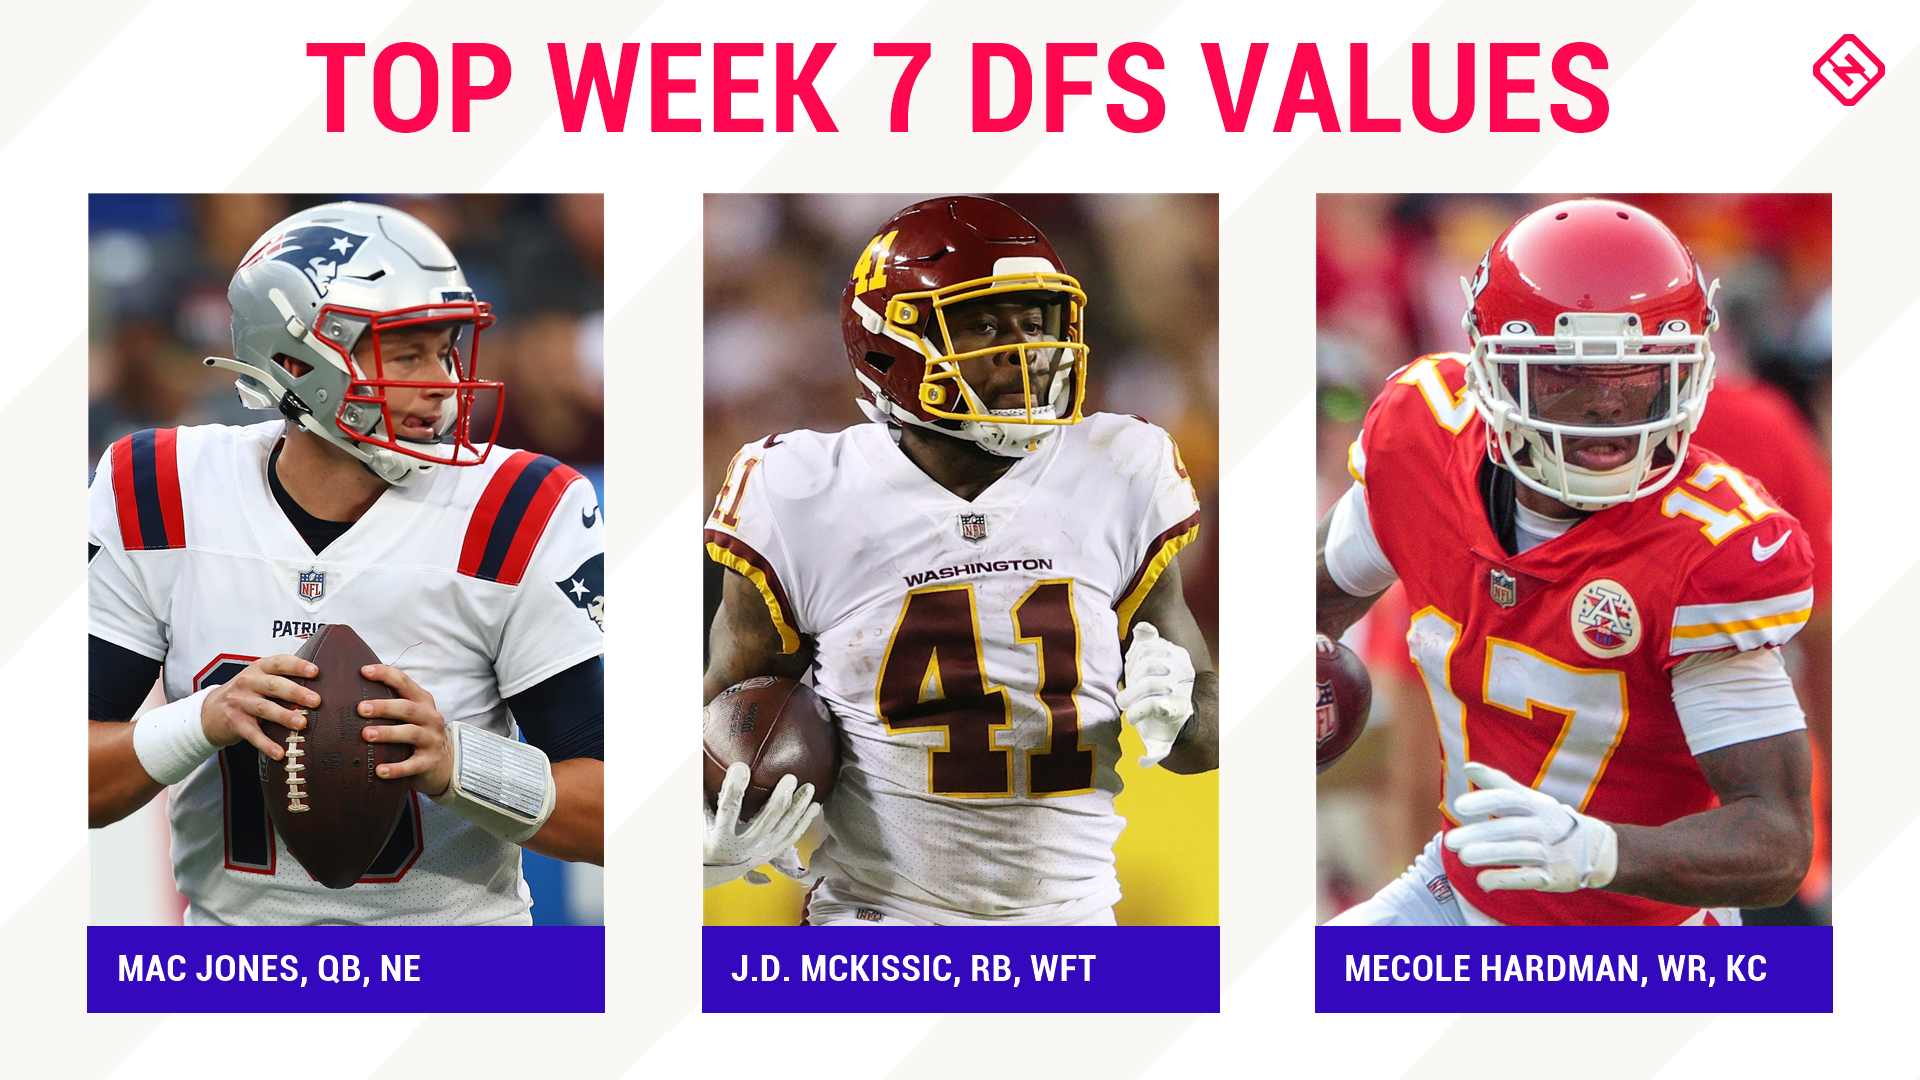 NFL DFS Picks Week 7: Best sleepers, value players for DraftKings, FanDuel daily fantasy football lineups